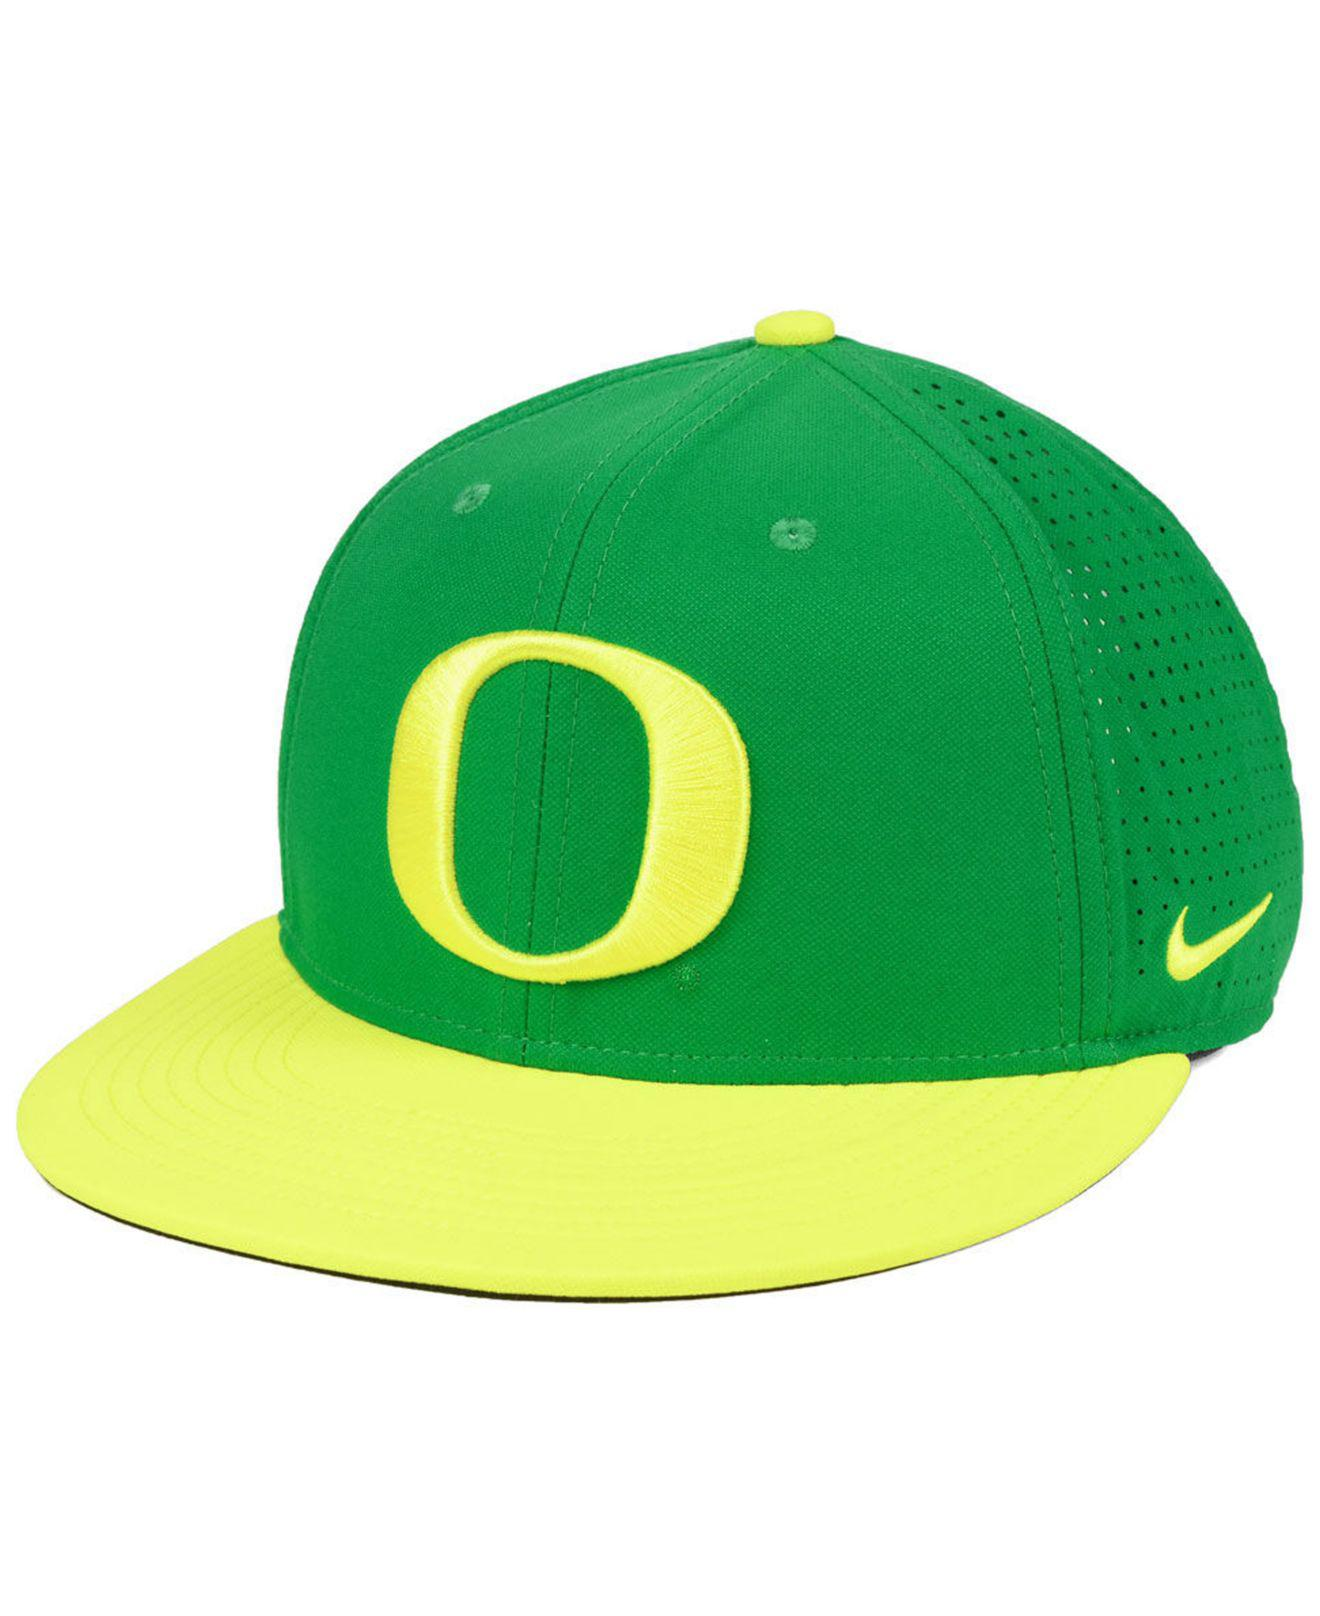 Lyst - Nike Oregon Ducks Dri-fit Vapor Snapback Cap in Green for Men 3307f3c25dd4